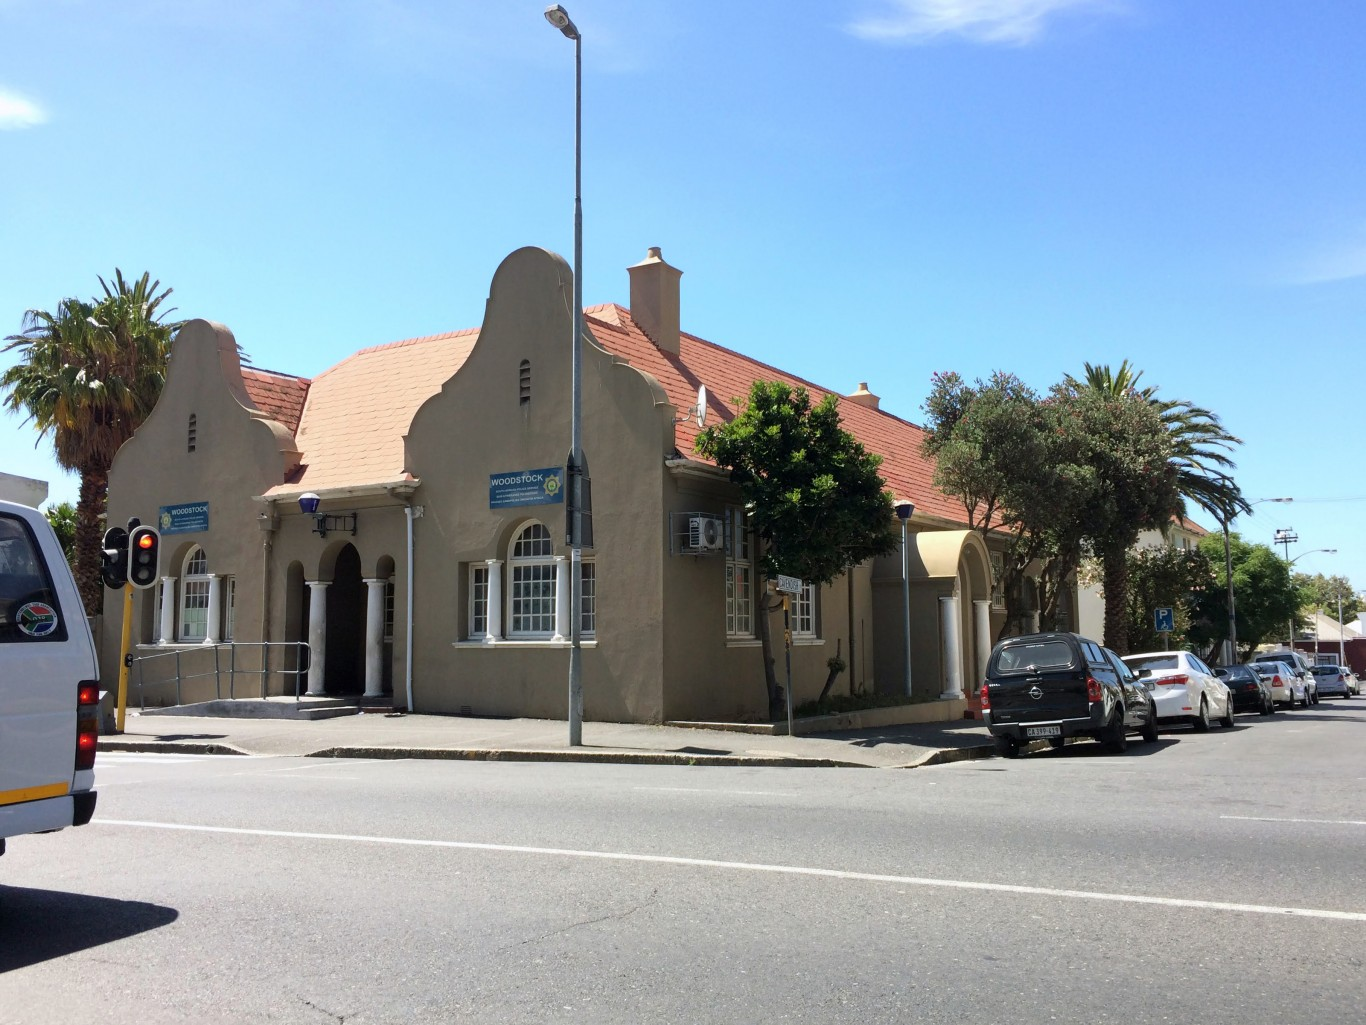 Woodstock Police Station, Cape Town